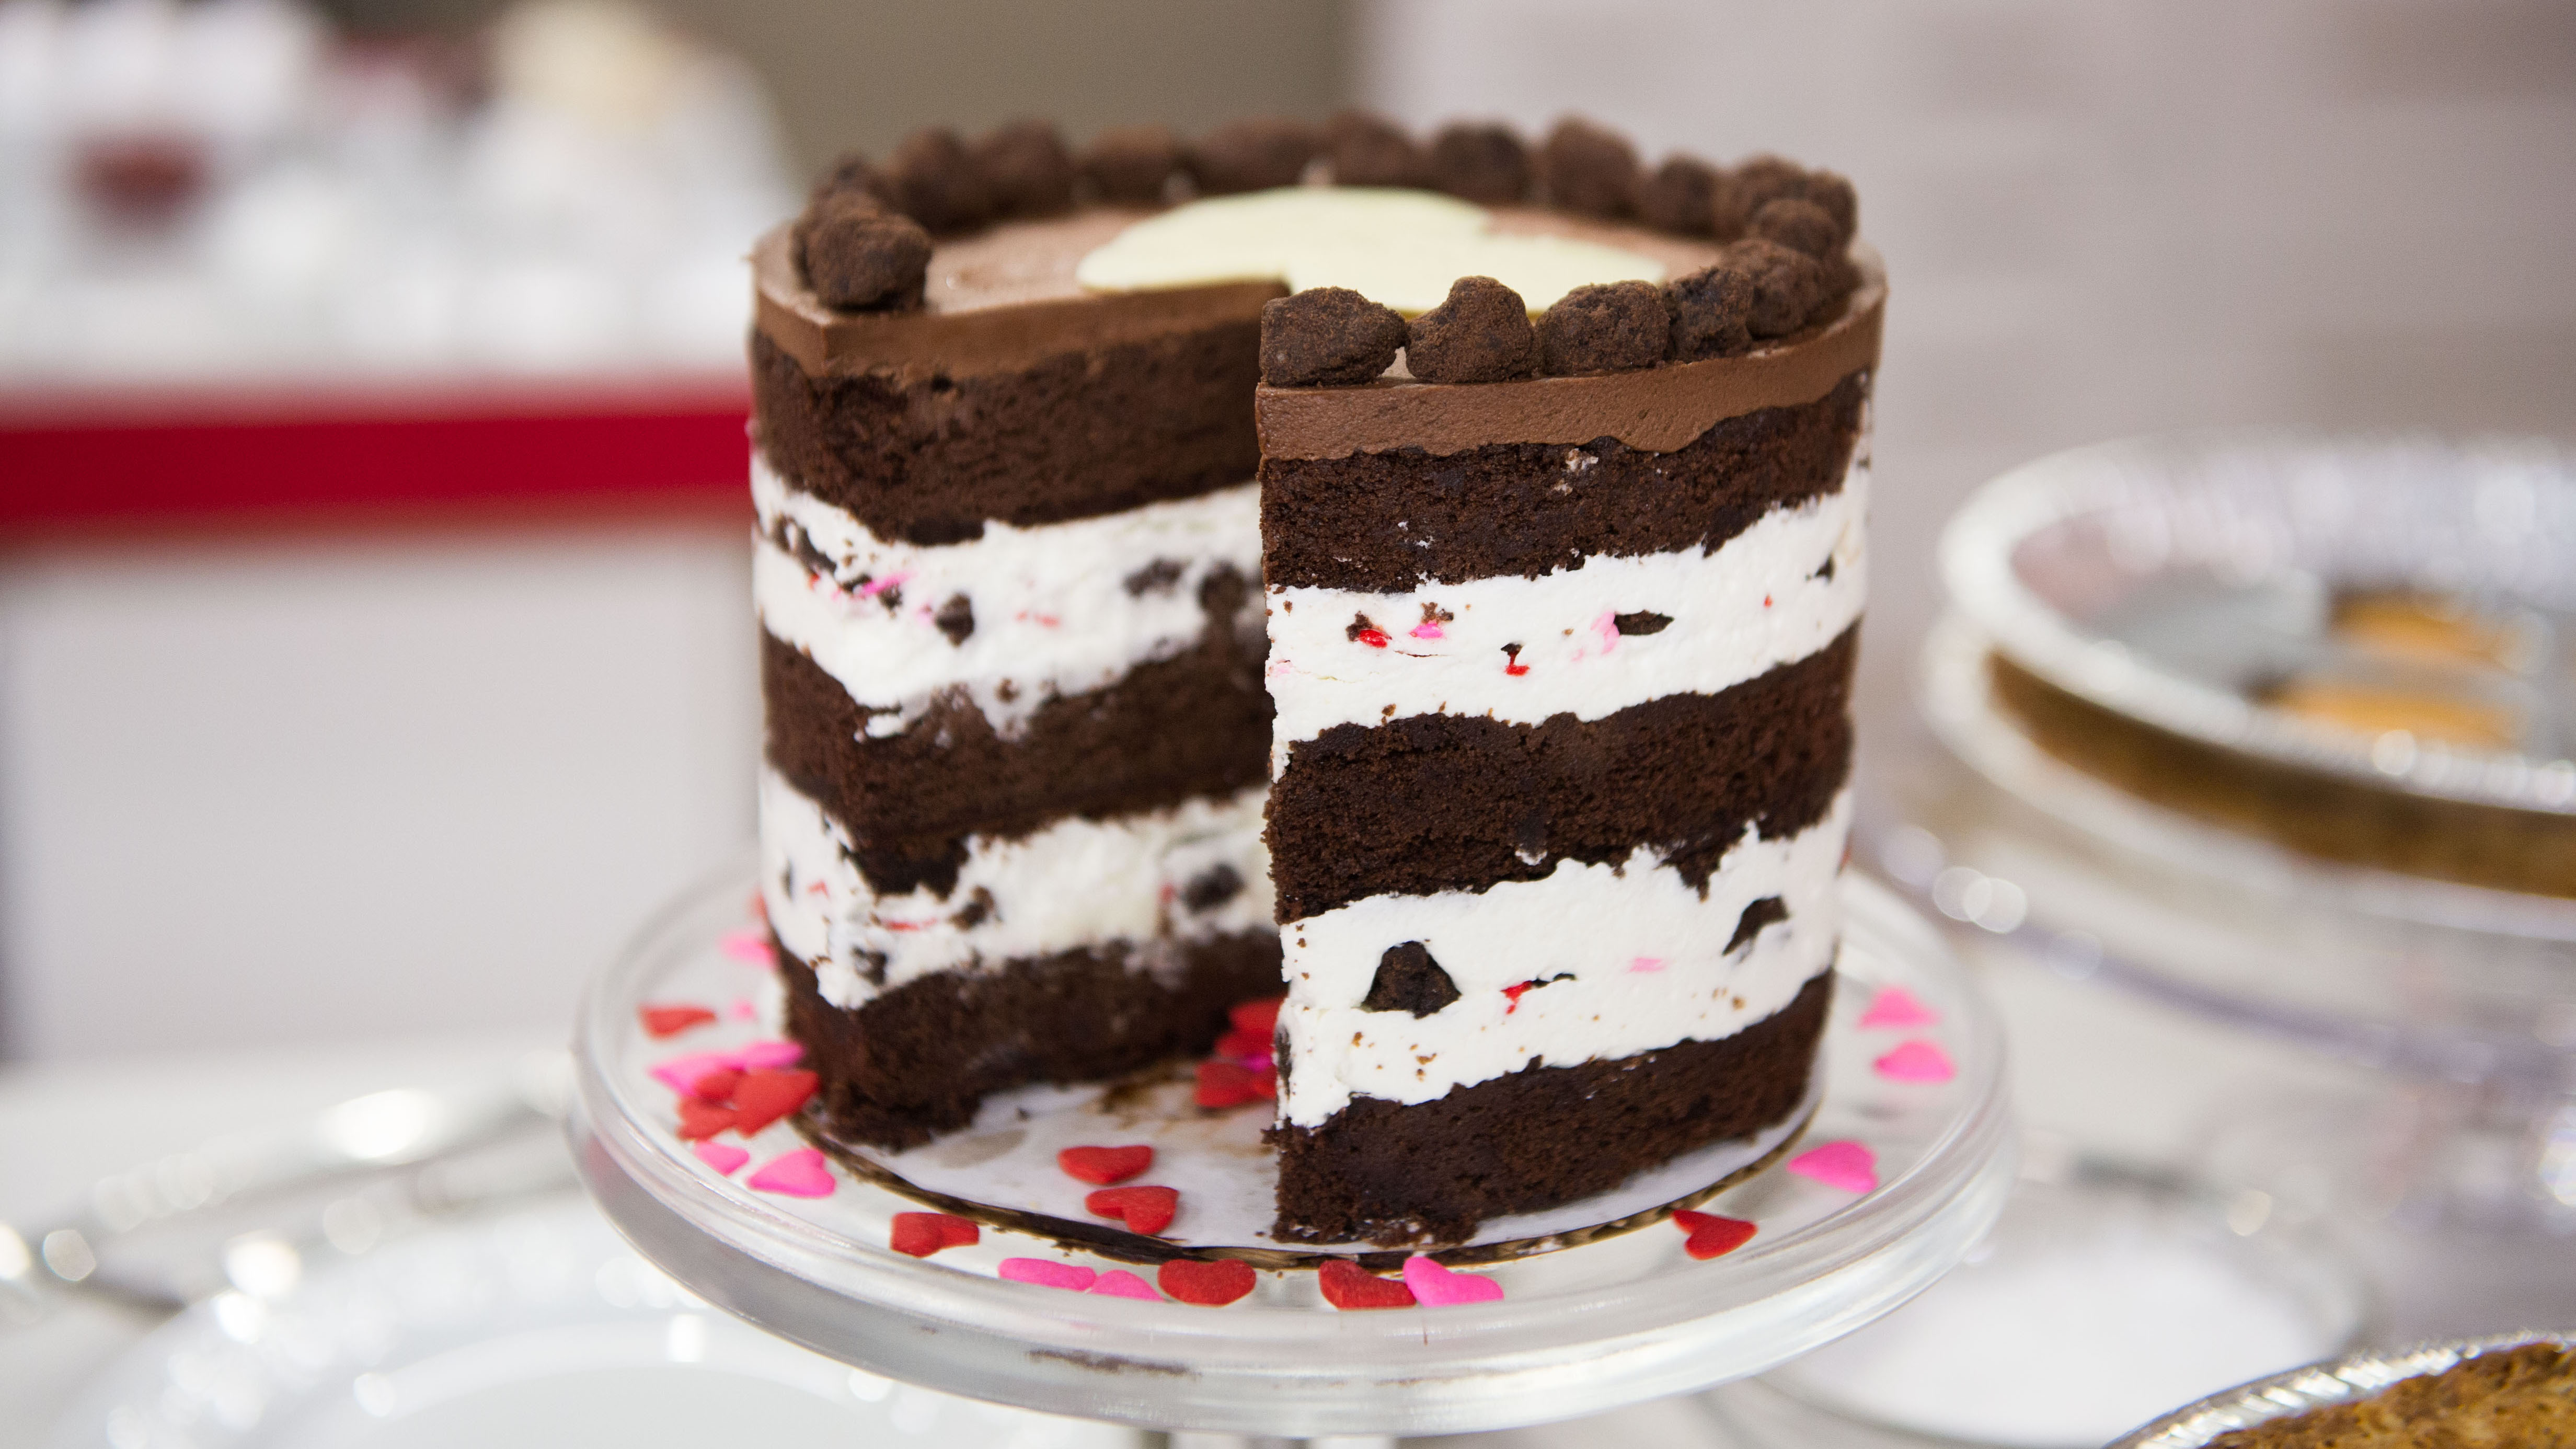 What Is A Substitute For Vanilla Extract In Cake